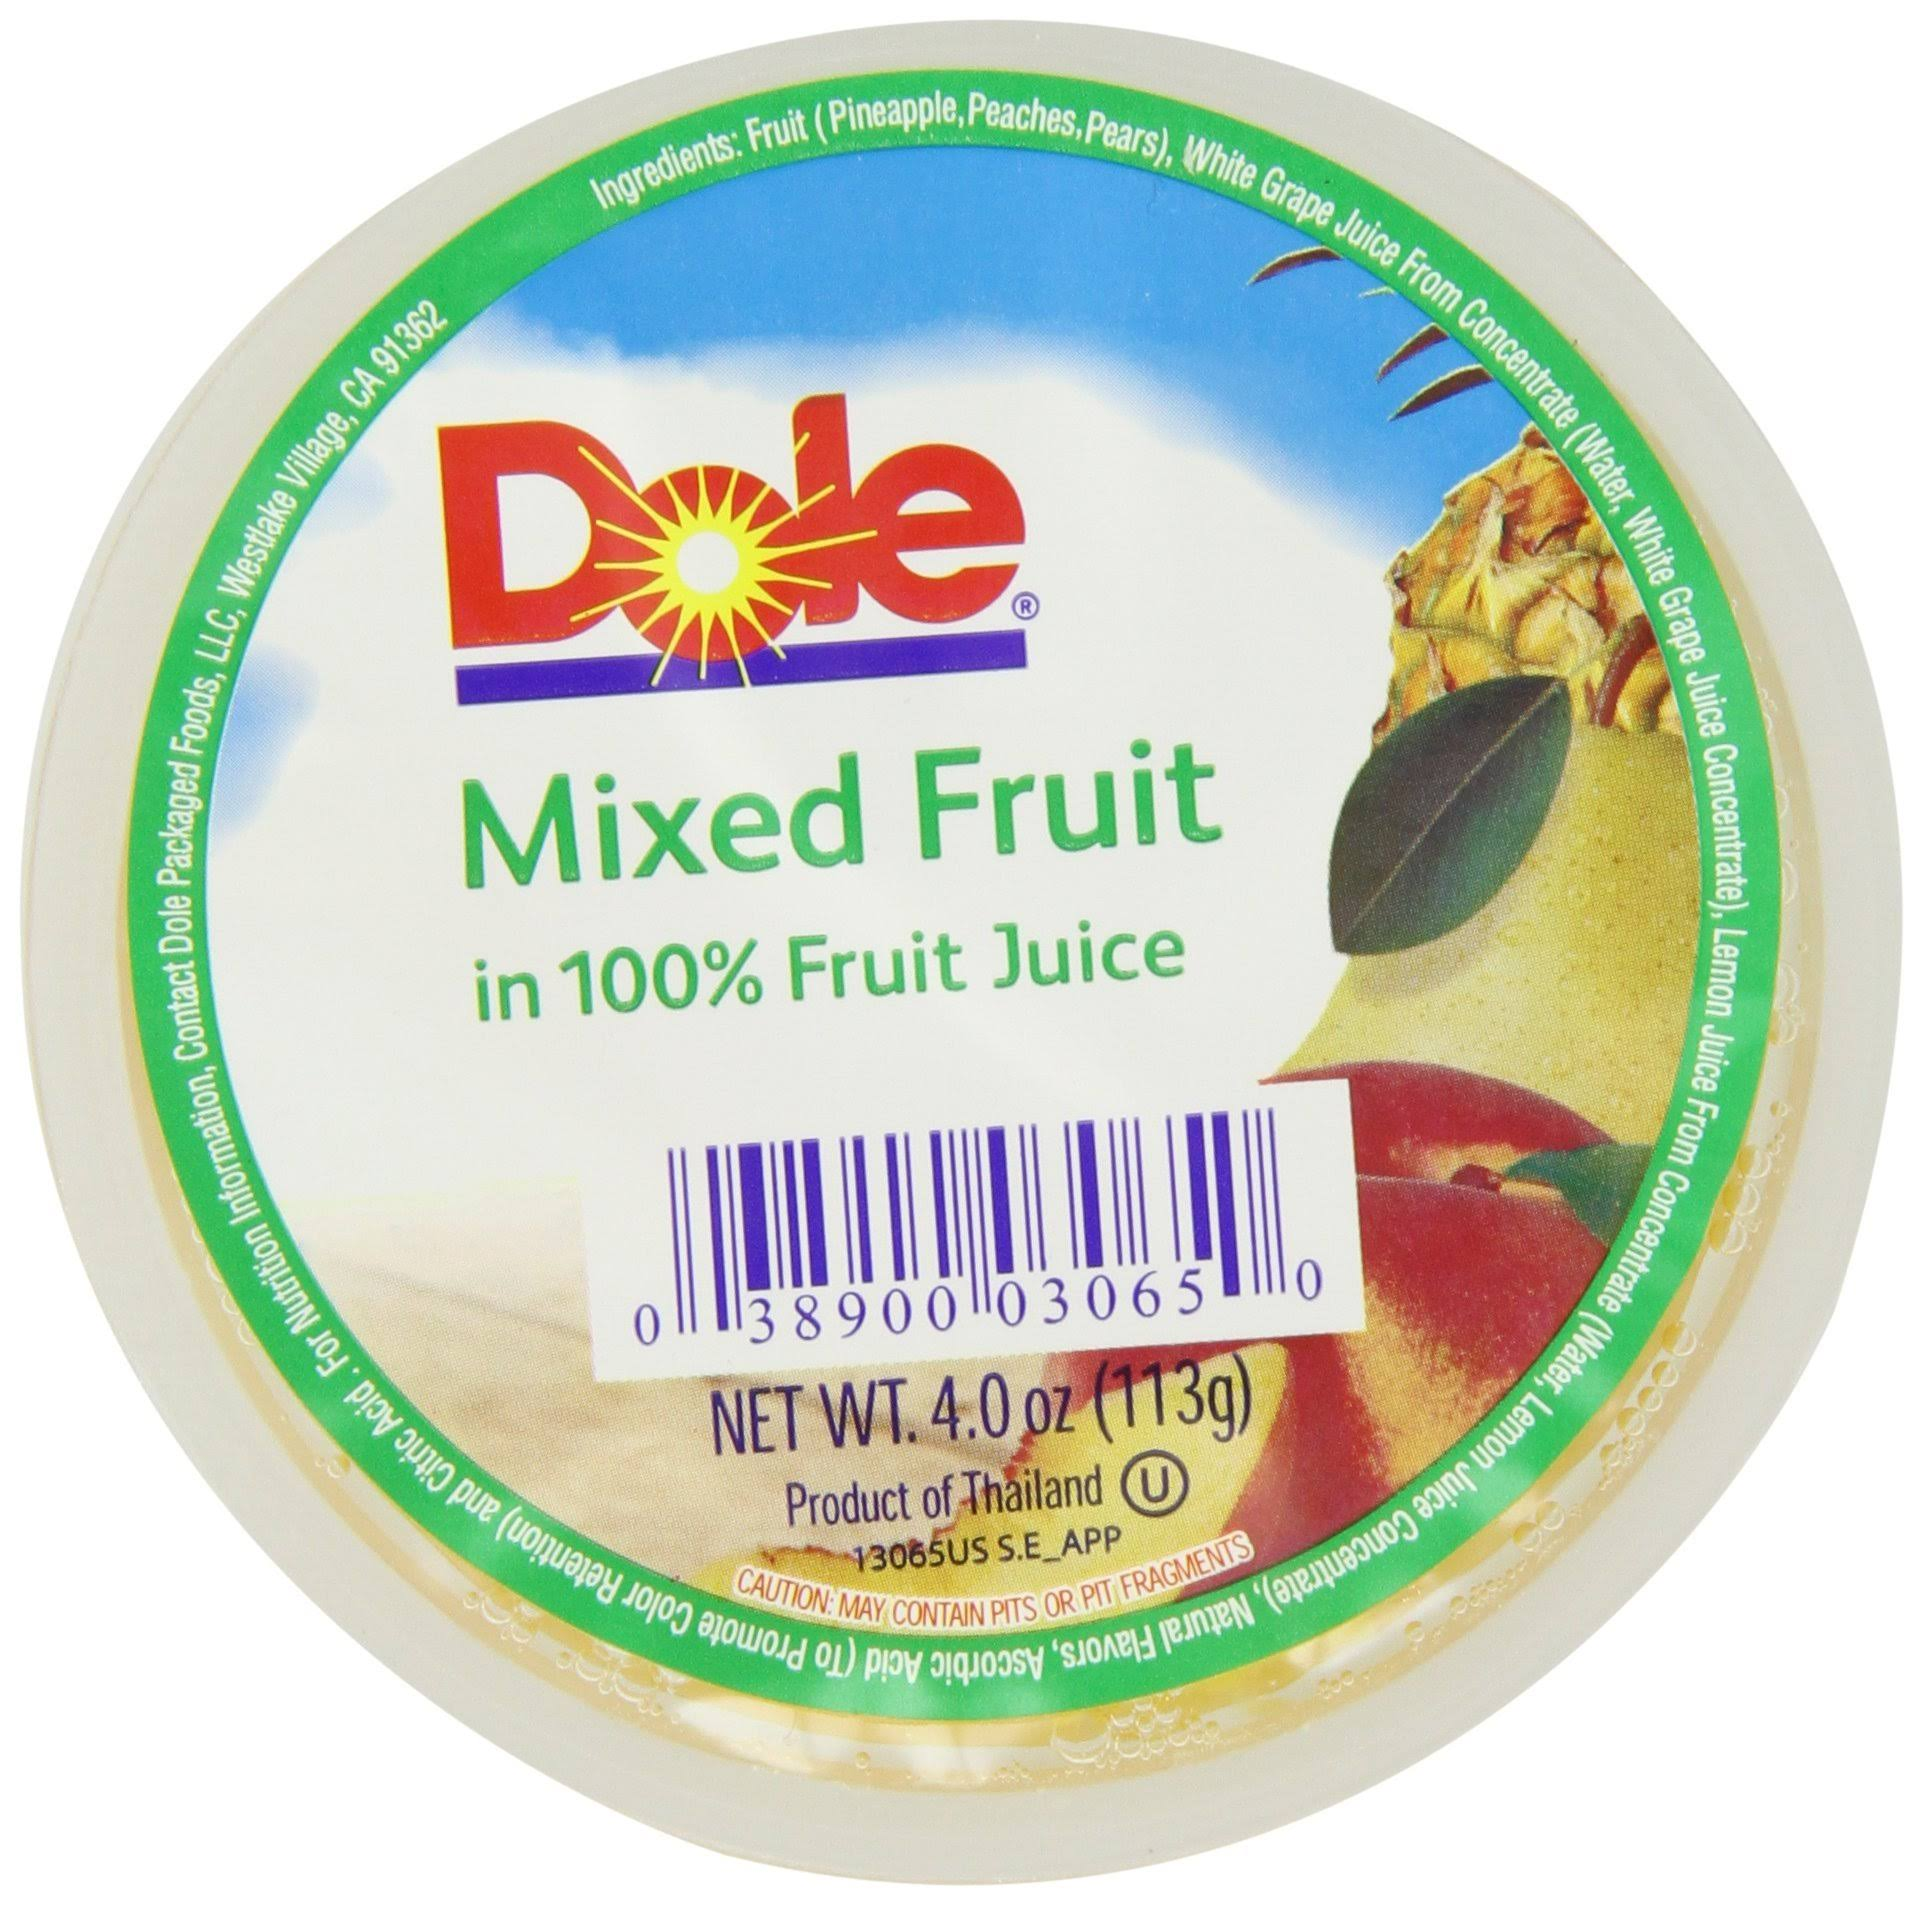 Dole in 100% Fruit Juice Mixed Fruit - 4 oz